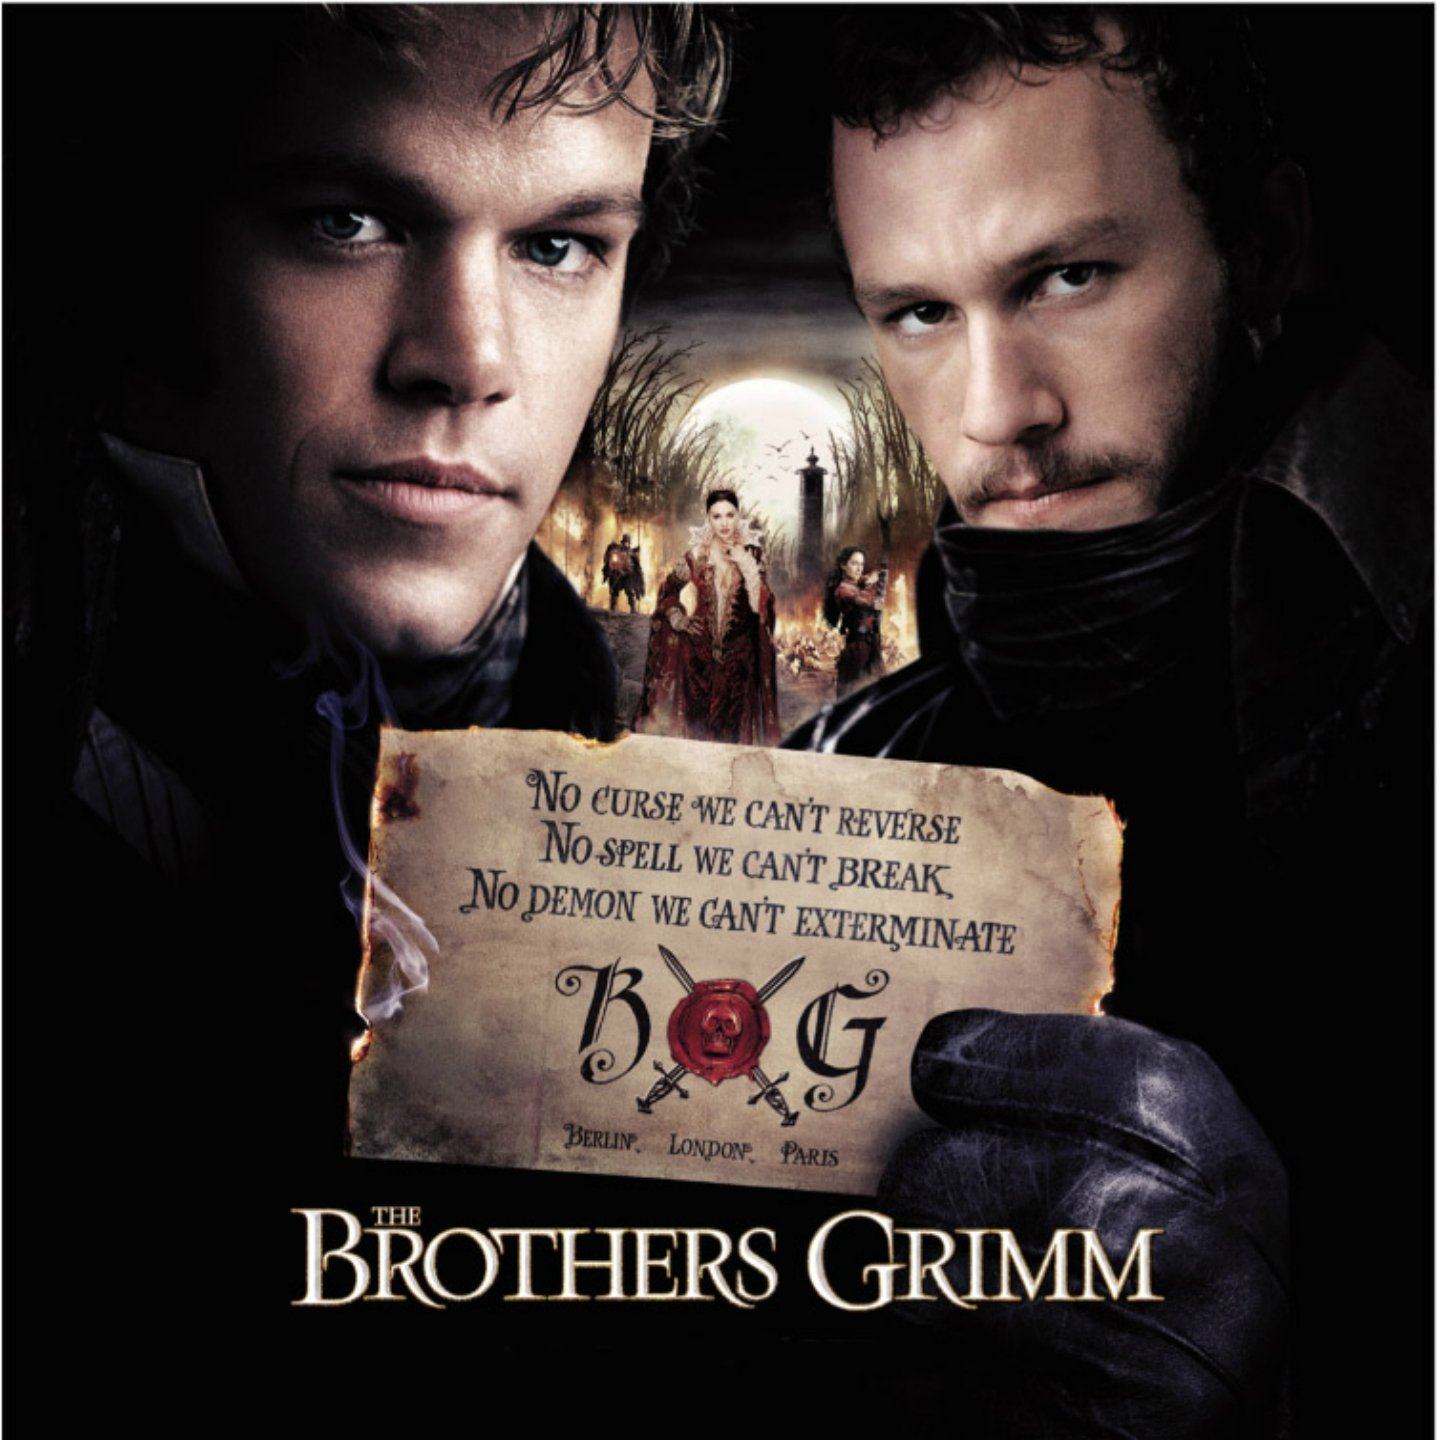 bande originale soundtrack ost score frères brothers grimm disney dimension